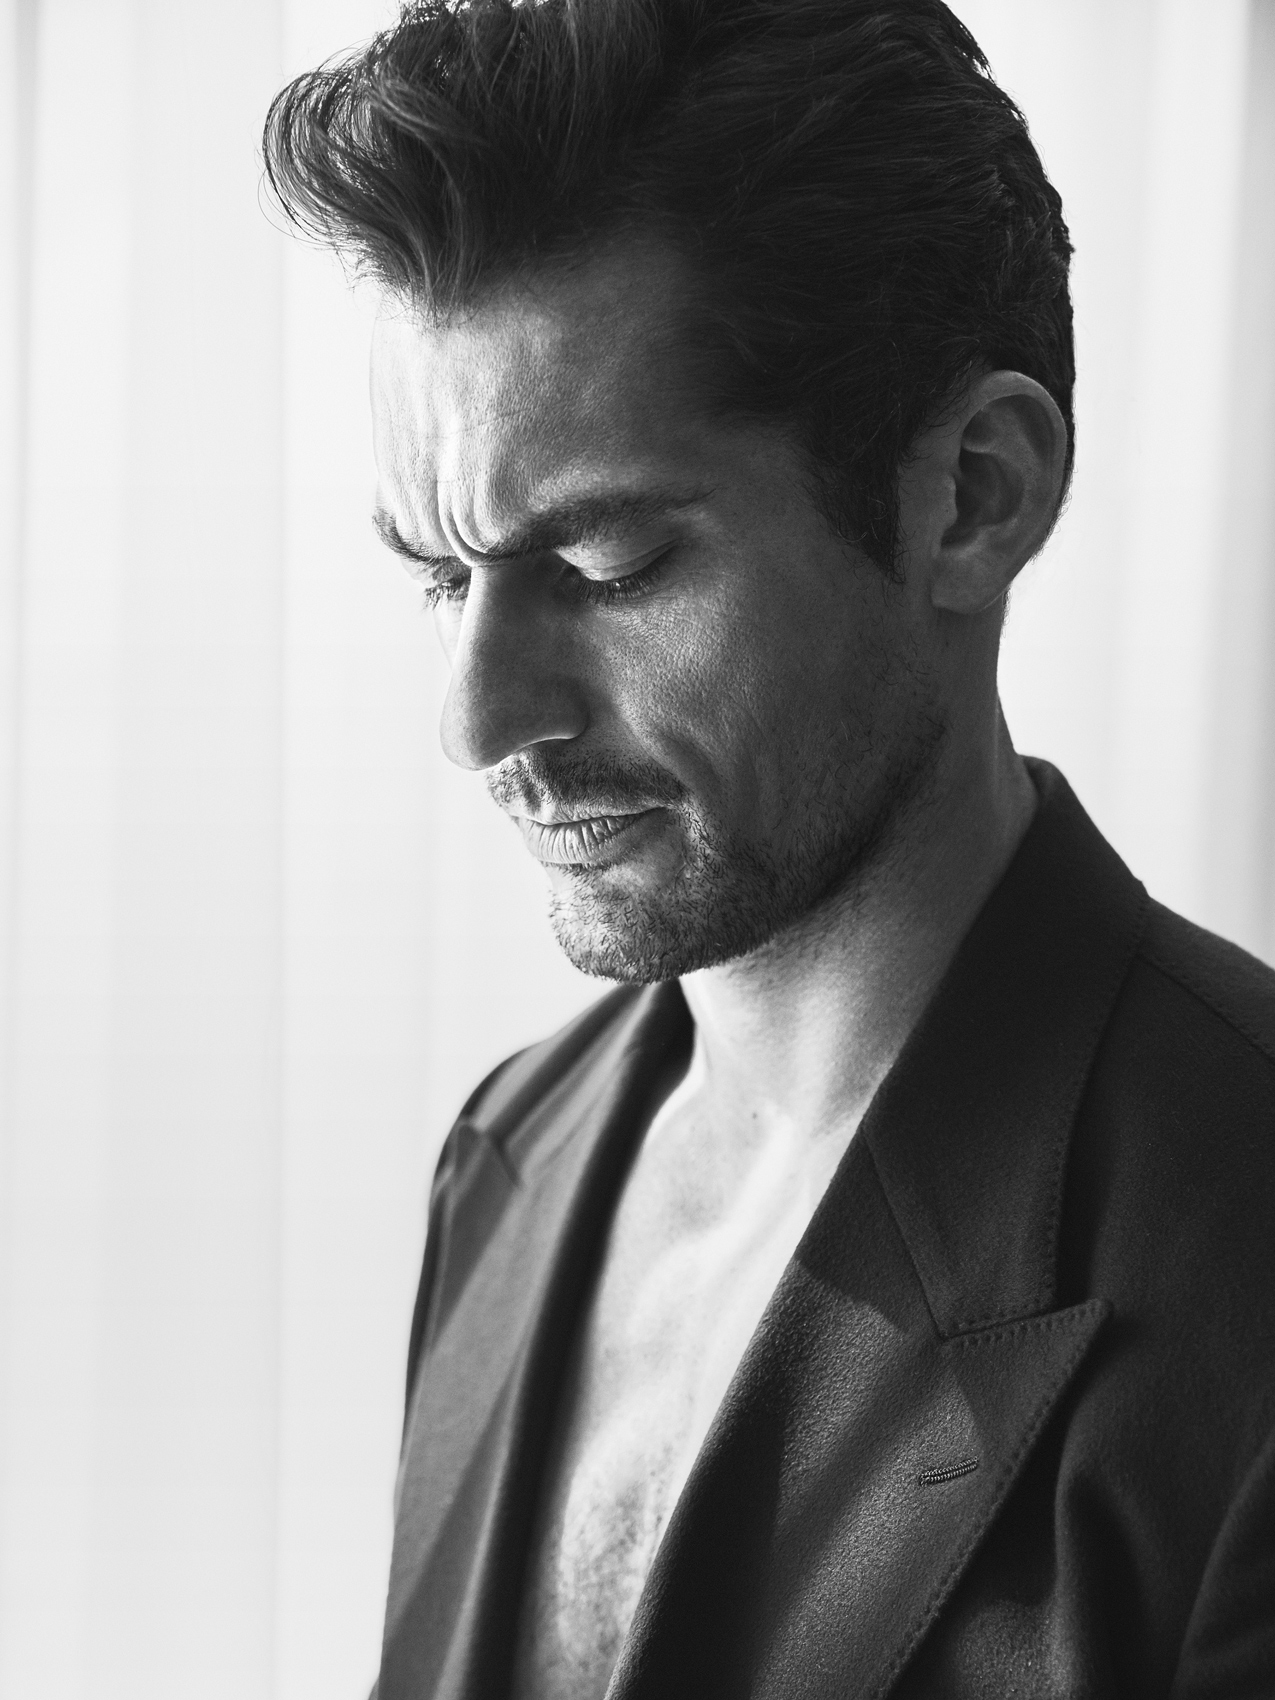 20150711_JR_DavidGandy_0464B_flat_web